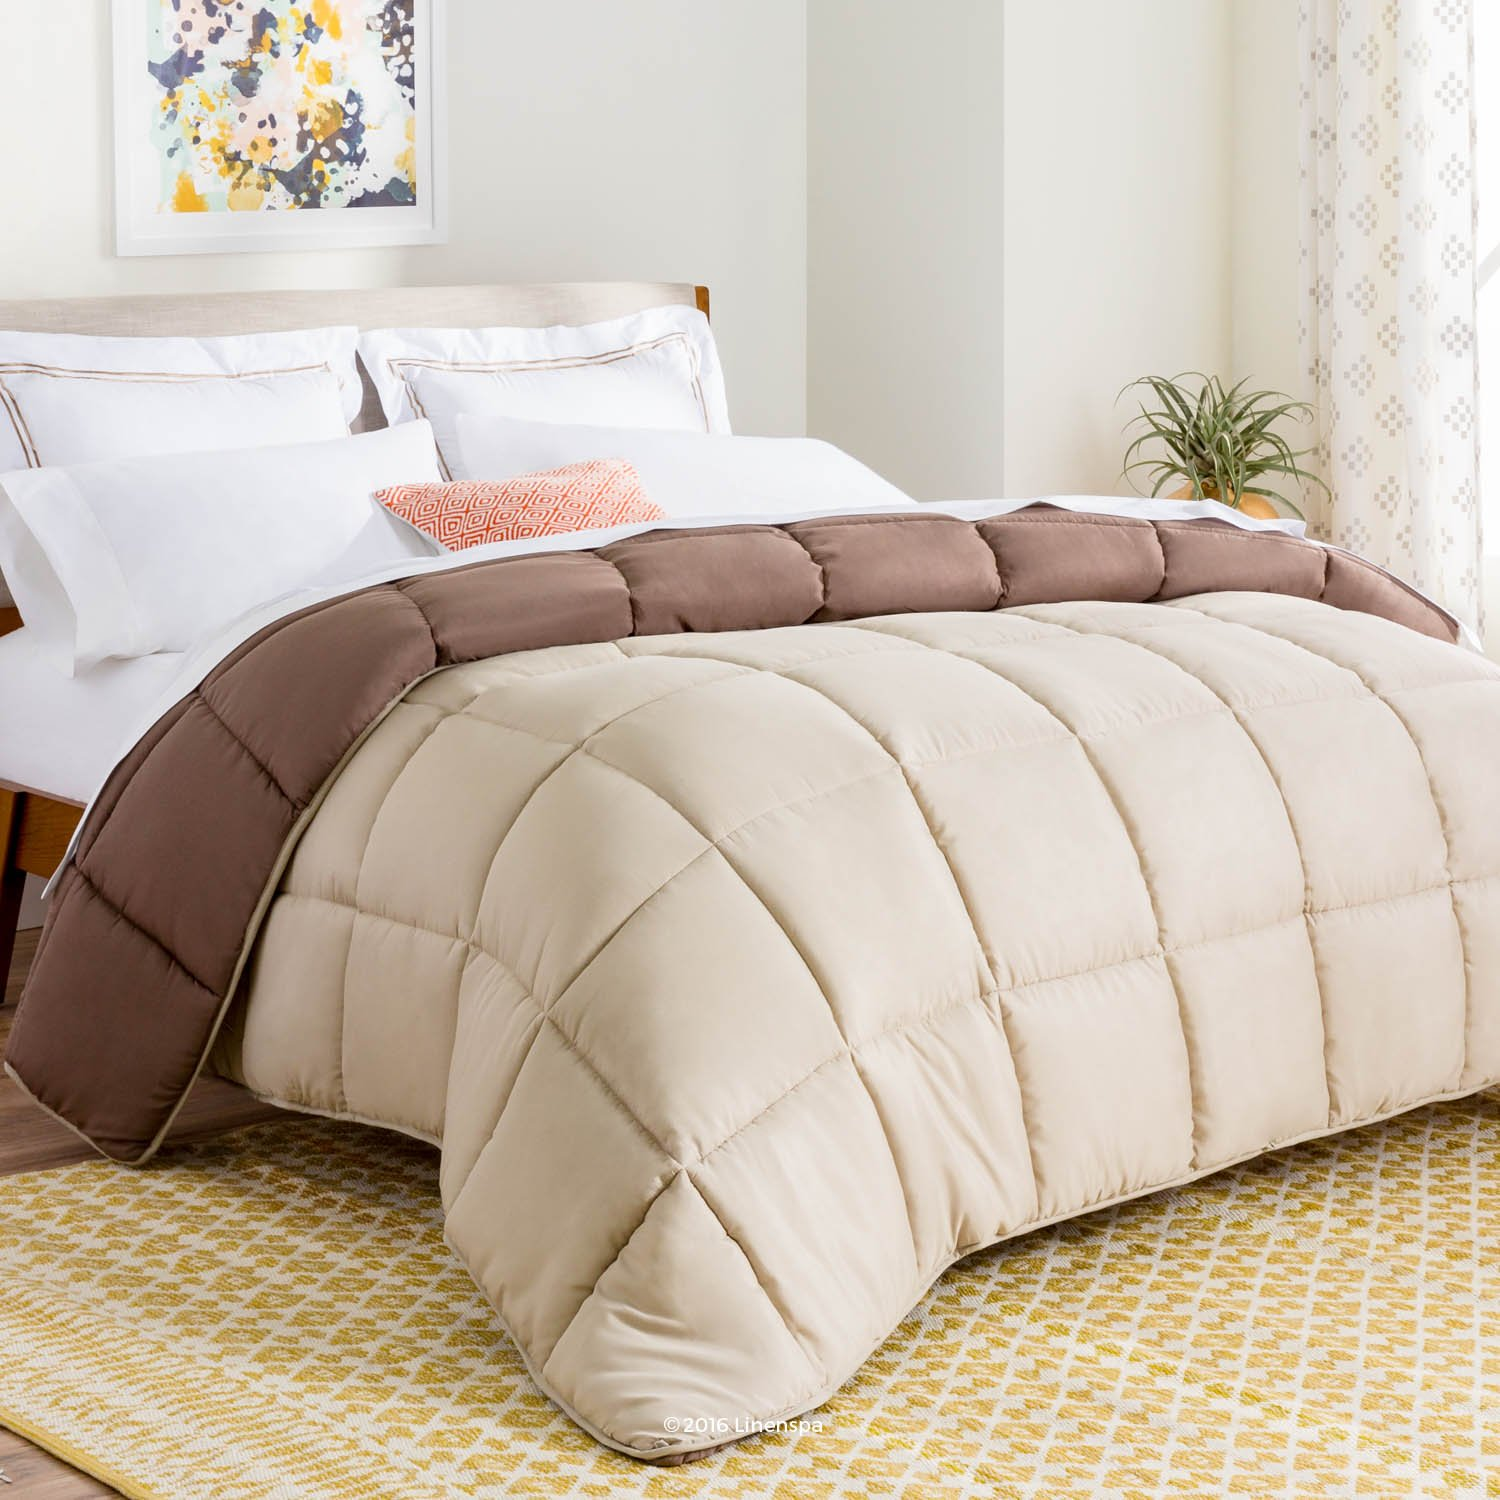 LINENSPA Reversible Down Alternative Quilted Comforter with Corner Duvet Tabs - Sand/Mocha - Queen